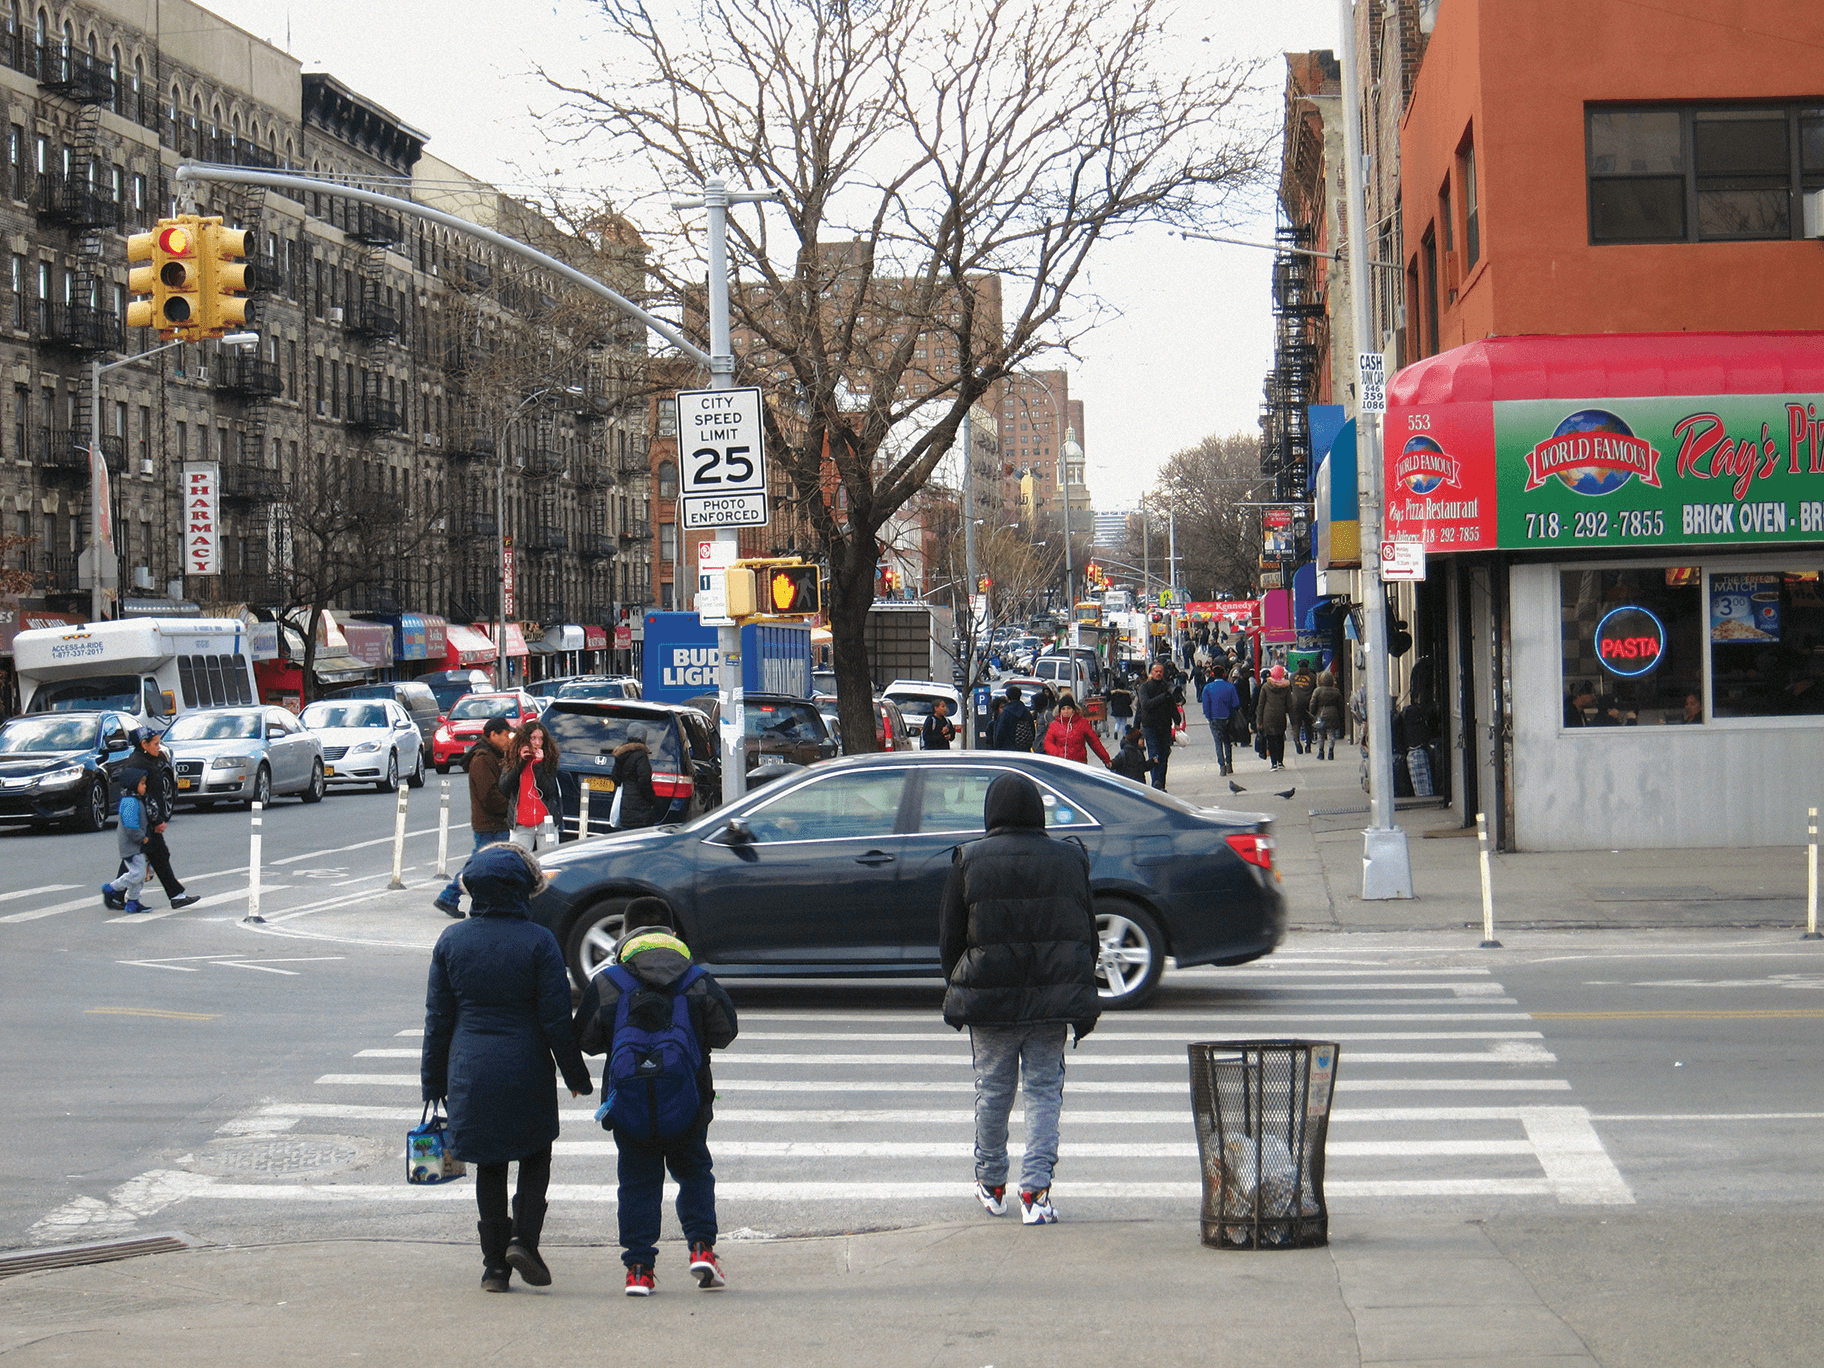 139th Street in the Bronx, A mother and child are crossing at an intersection